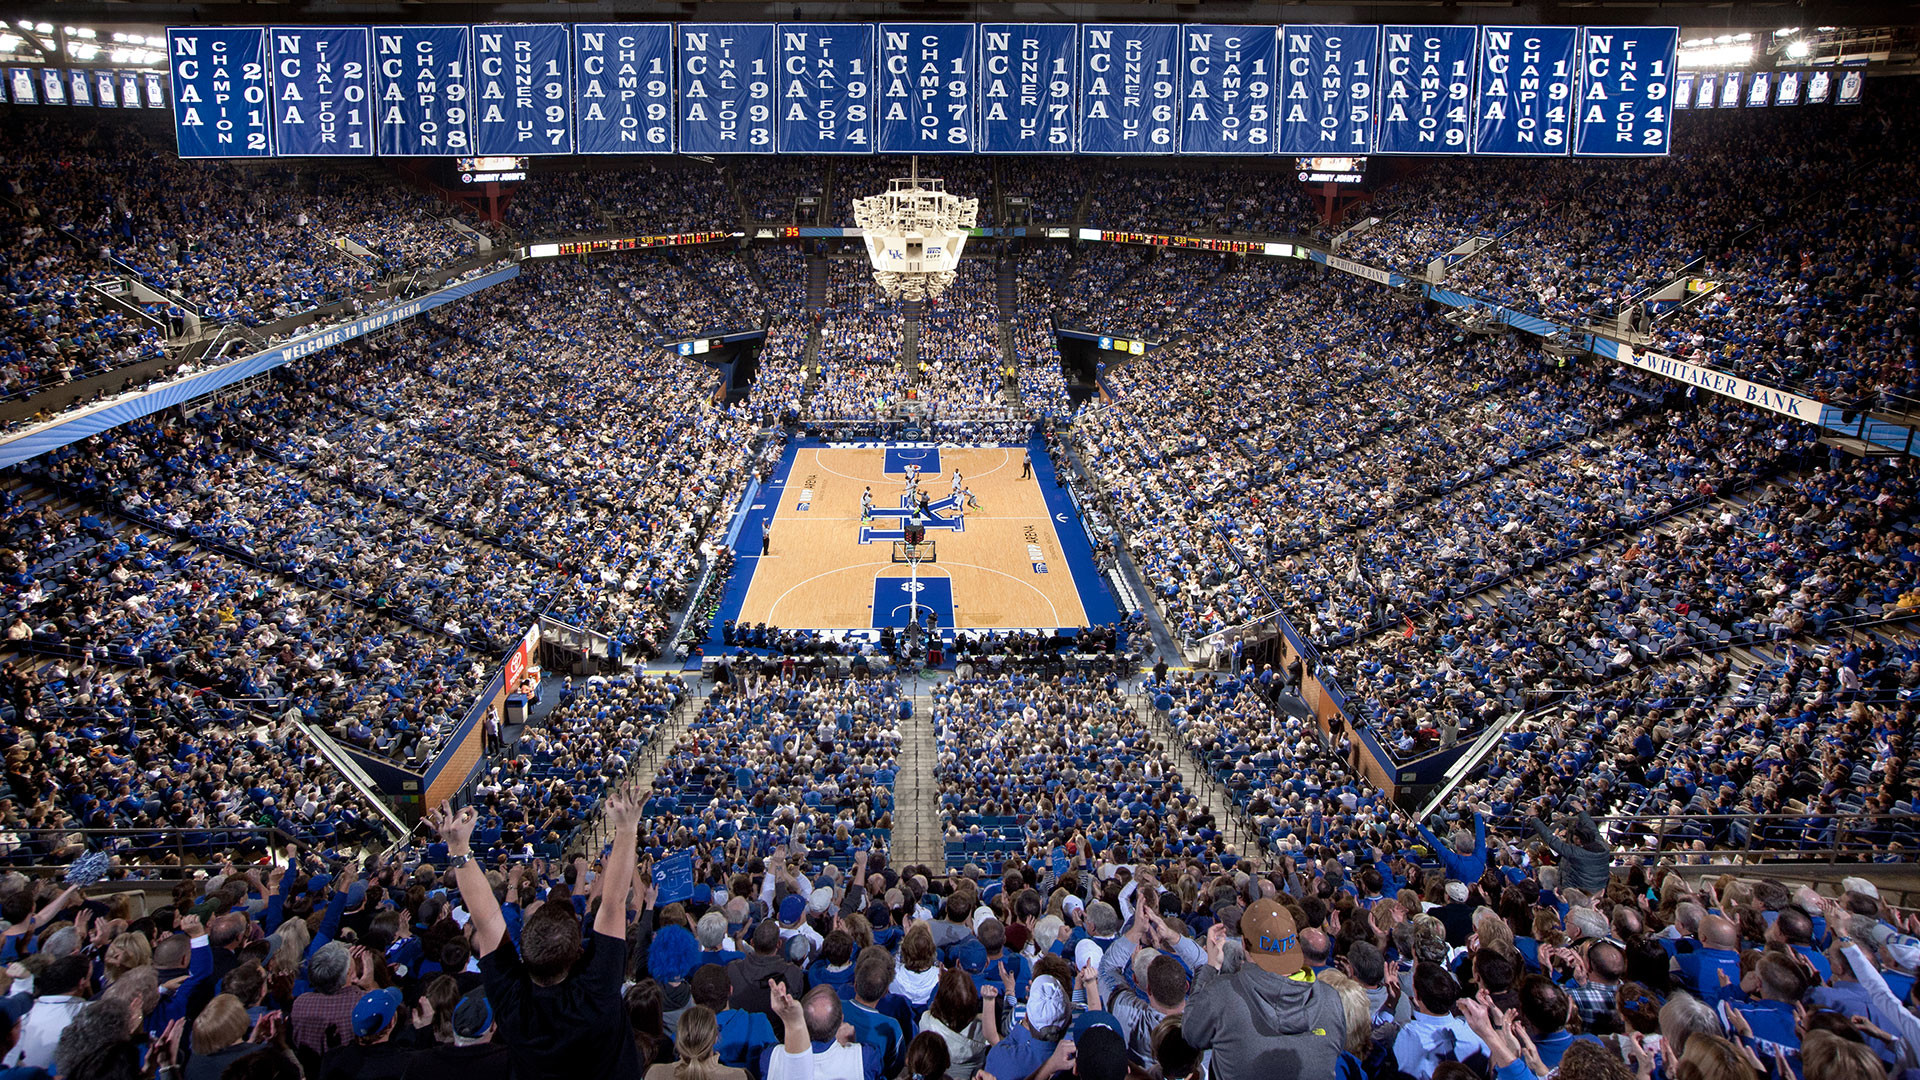 1920x1080 University of Kentucky Chrome Themes, iOS Wallpapers Blogs for 800×800  Kentucky Basketball Wallpapers (47 Wallpapers) | Adorable Wallpapers |  Pinterest ...